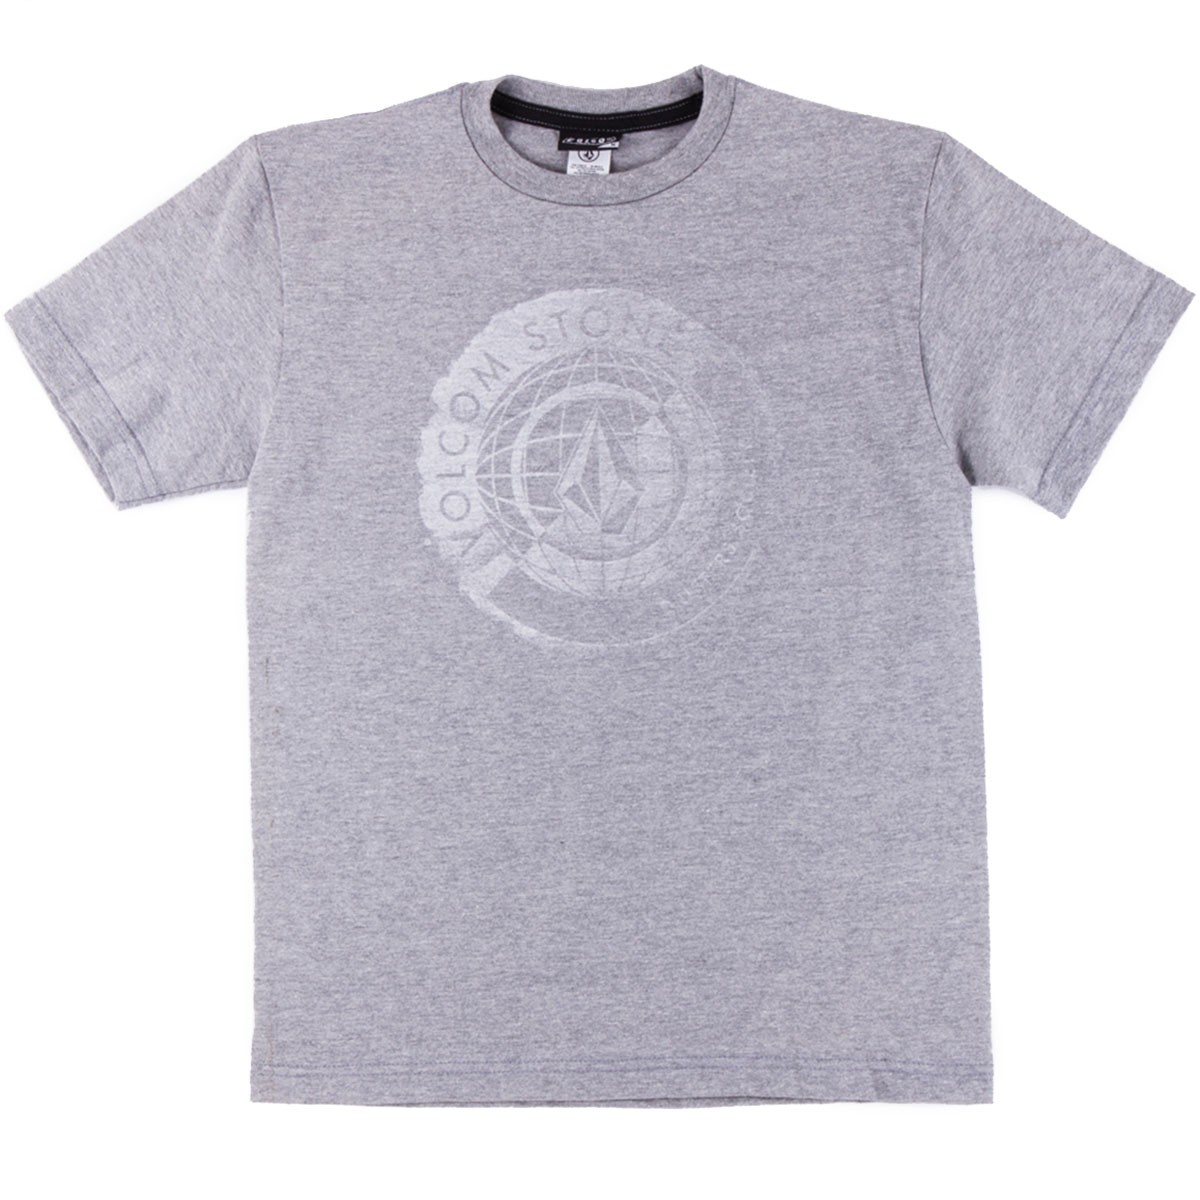 Volcom Global Connotations Youth T-Shirt - Heather Grey